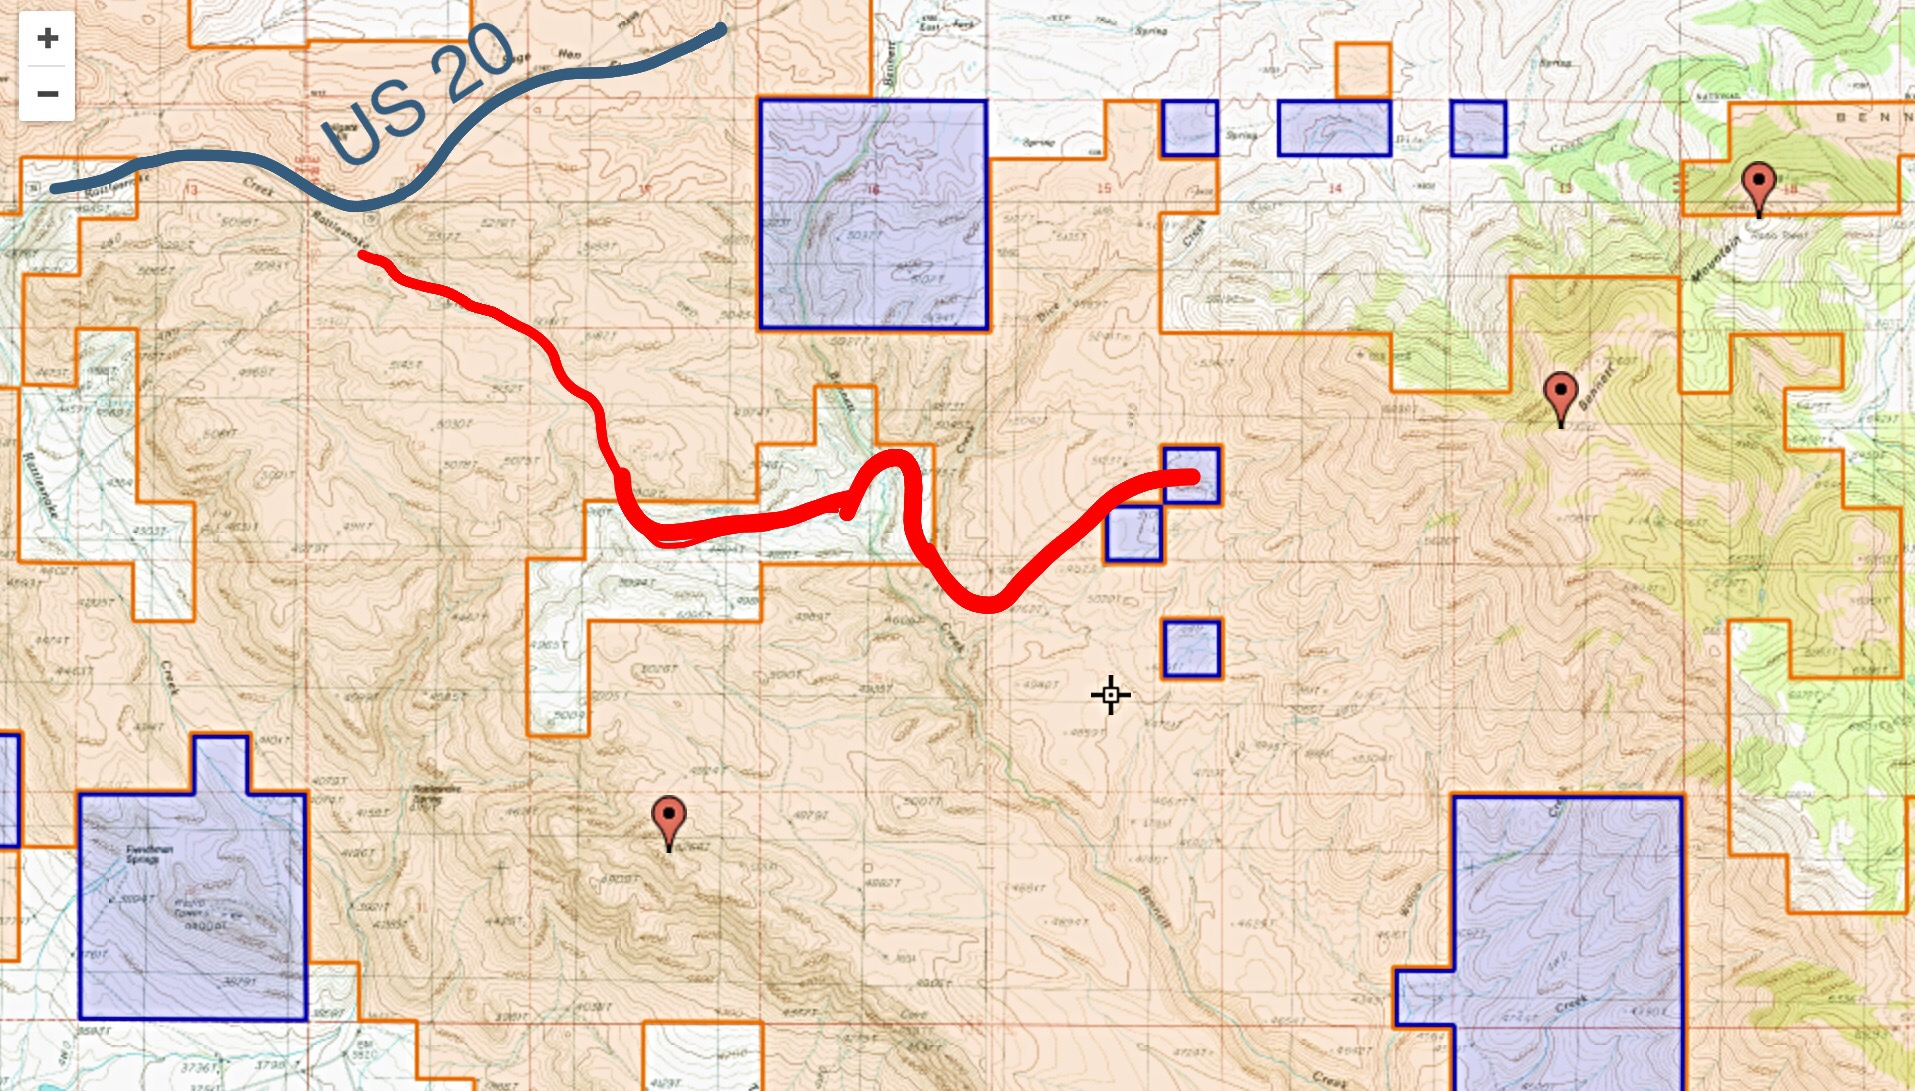 The only access information I have received for ascending this peak leaves US-20 just east of Tollgate and follows the red line shown on this map. This route crosses private property. I do not know if there is a public easement across the private ground. Check with the BLM.